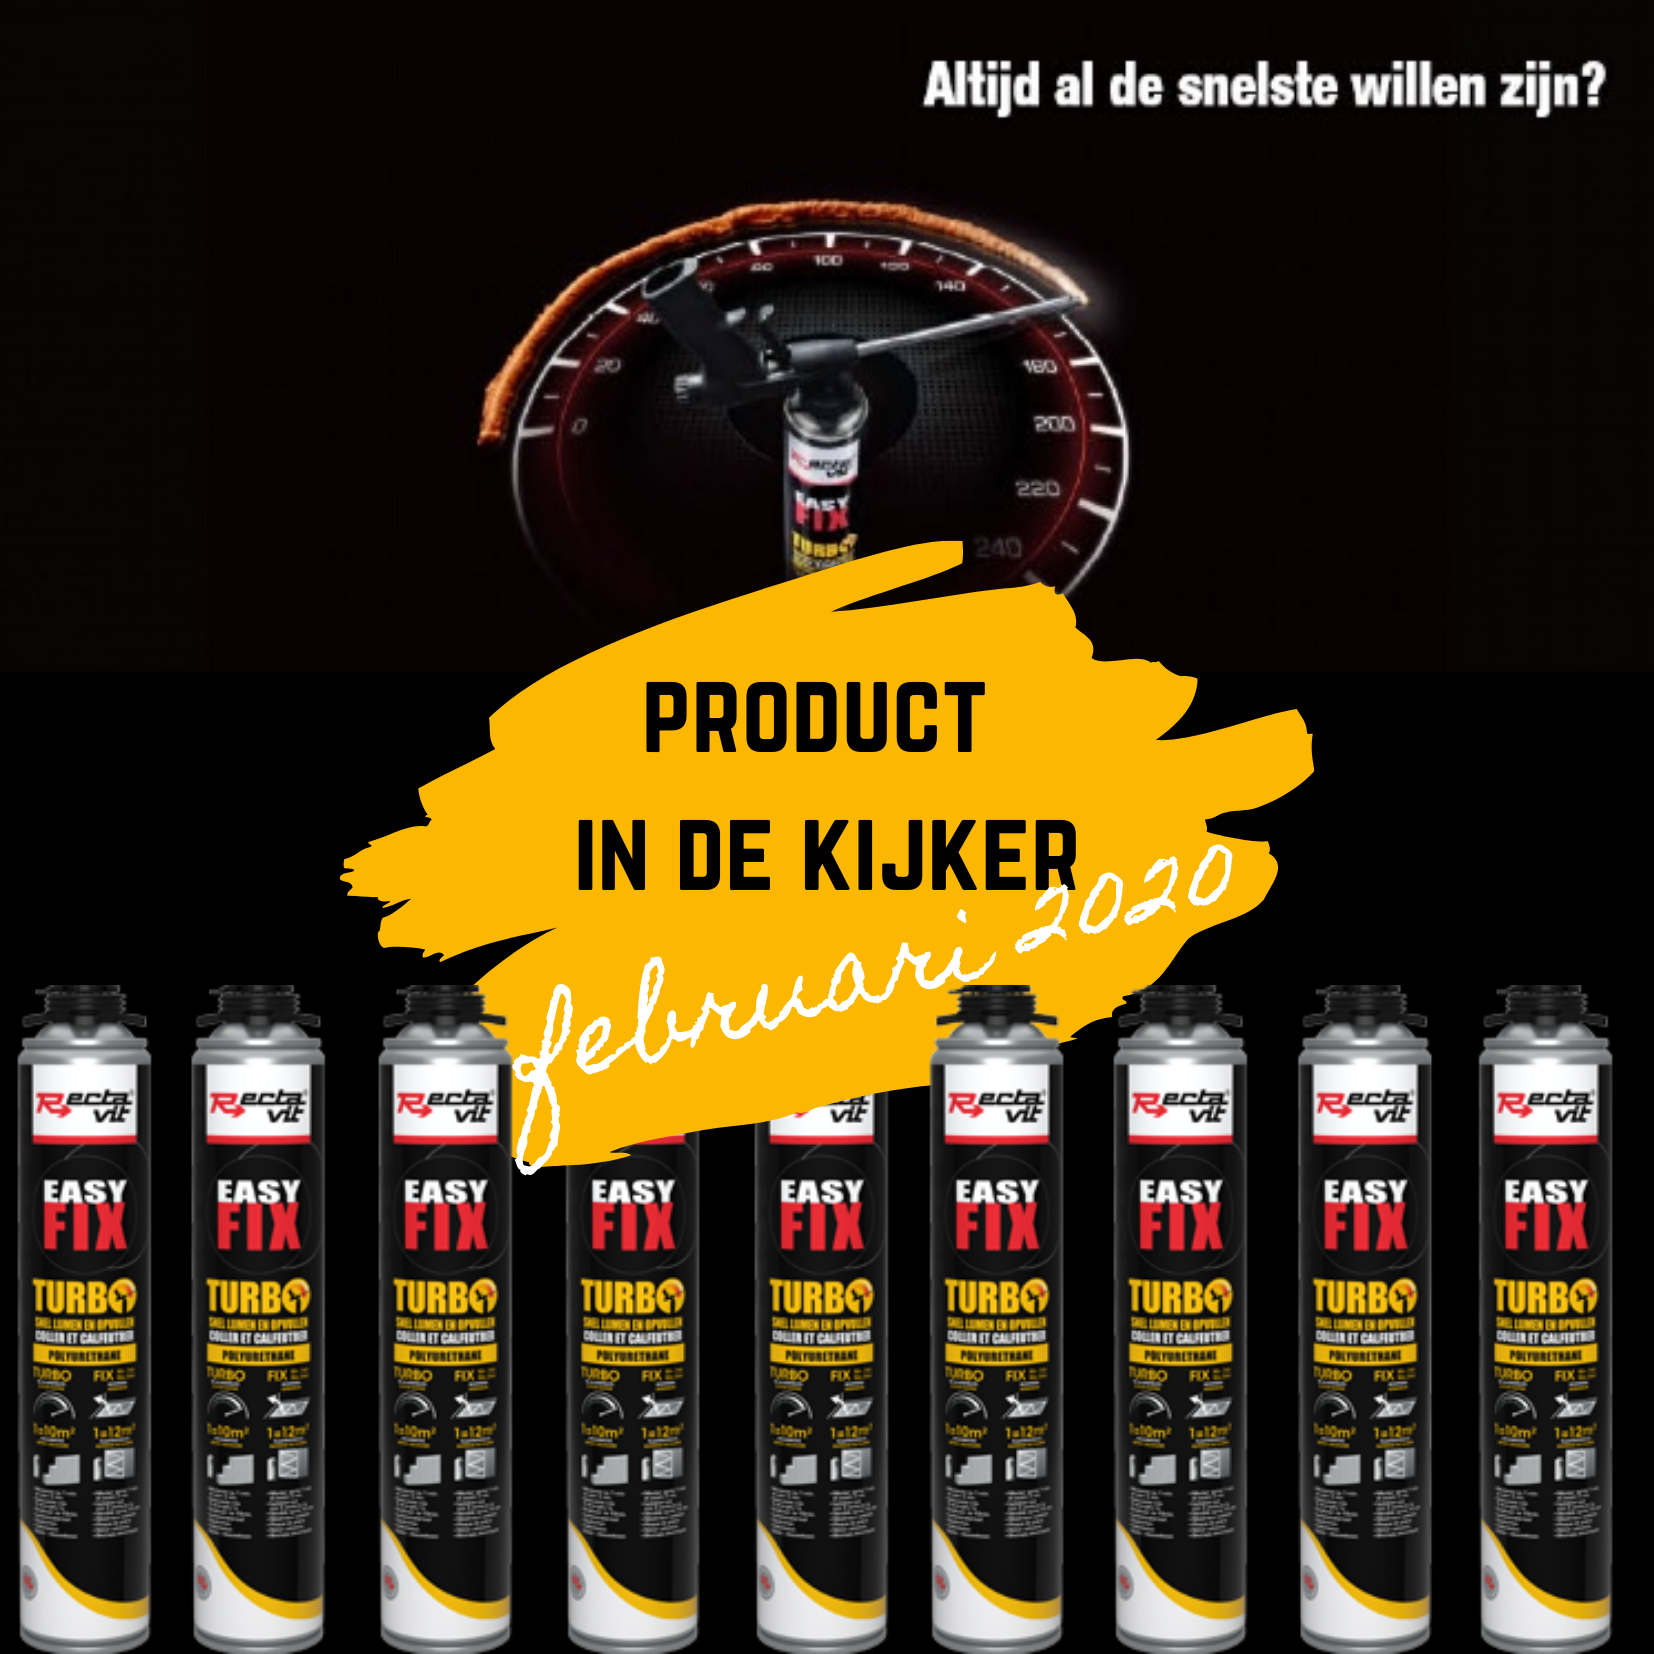 product in de kijker: Easy Fix Turbo